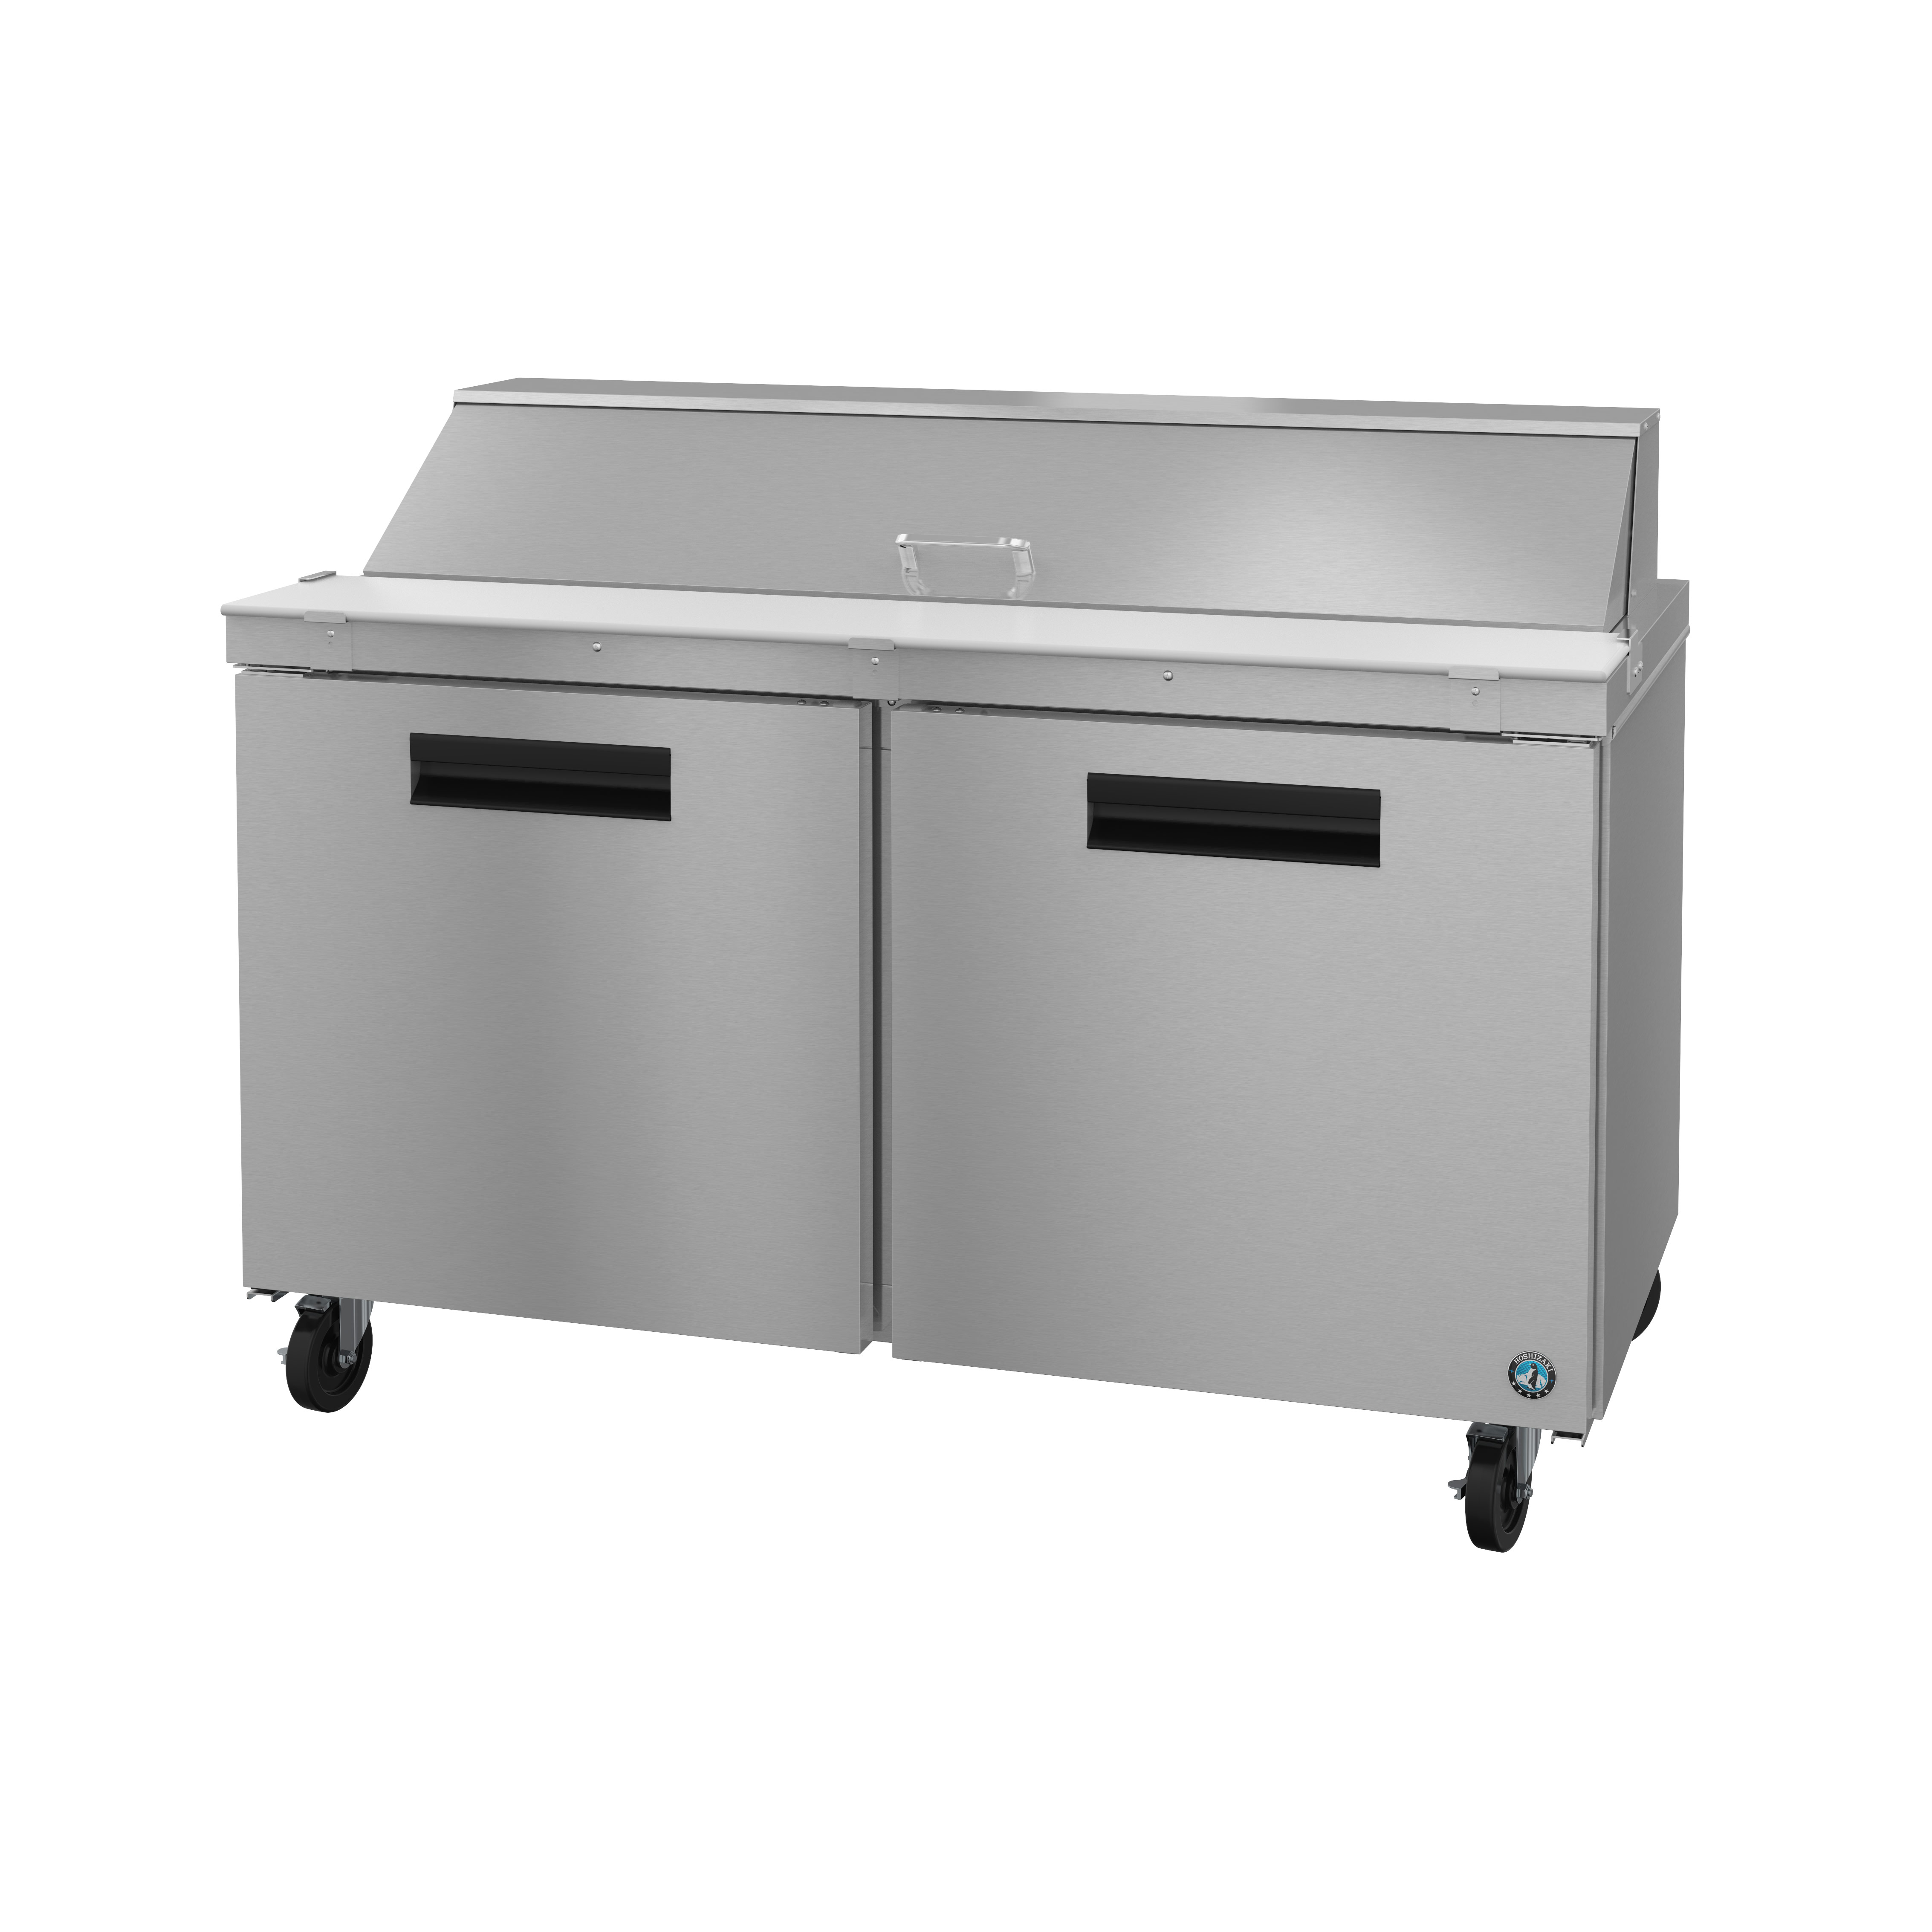 Hoshizaki SR60A-16 refrigerated counter, sandwich / salad unit